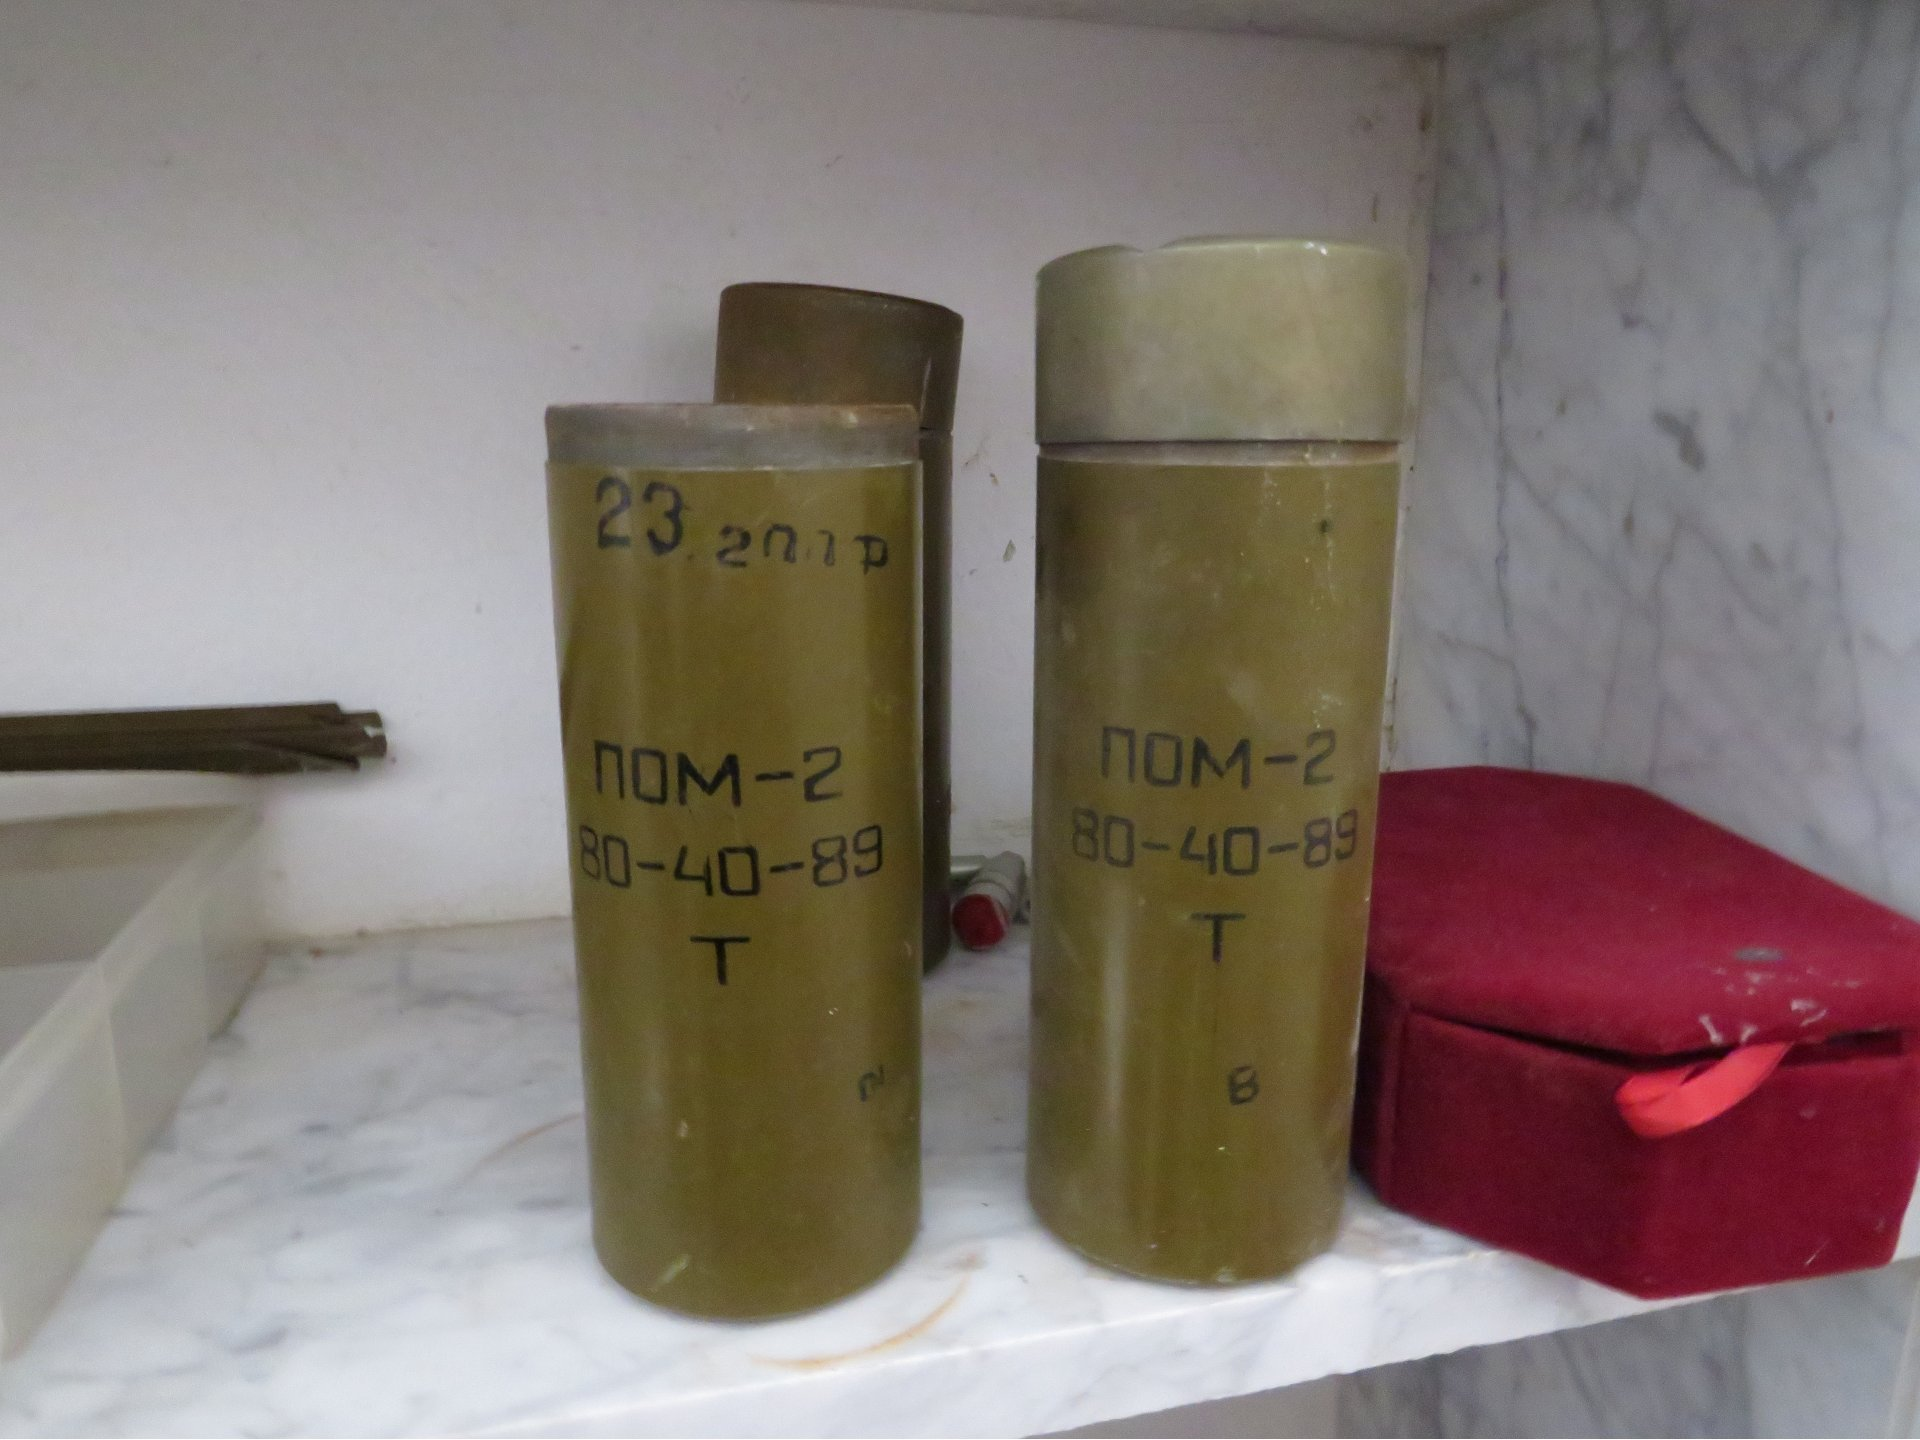 PAM-2 anti-personnel mines recovered from the Tripoli battlefield (MEE/Daniel Hilton)